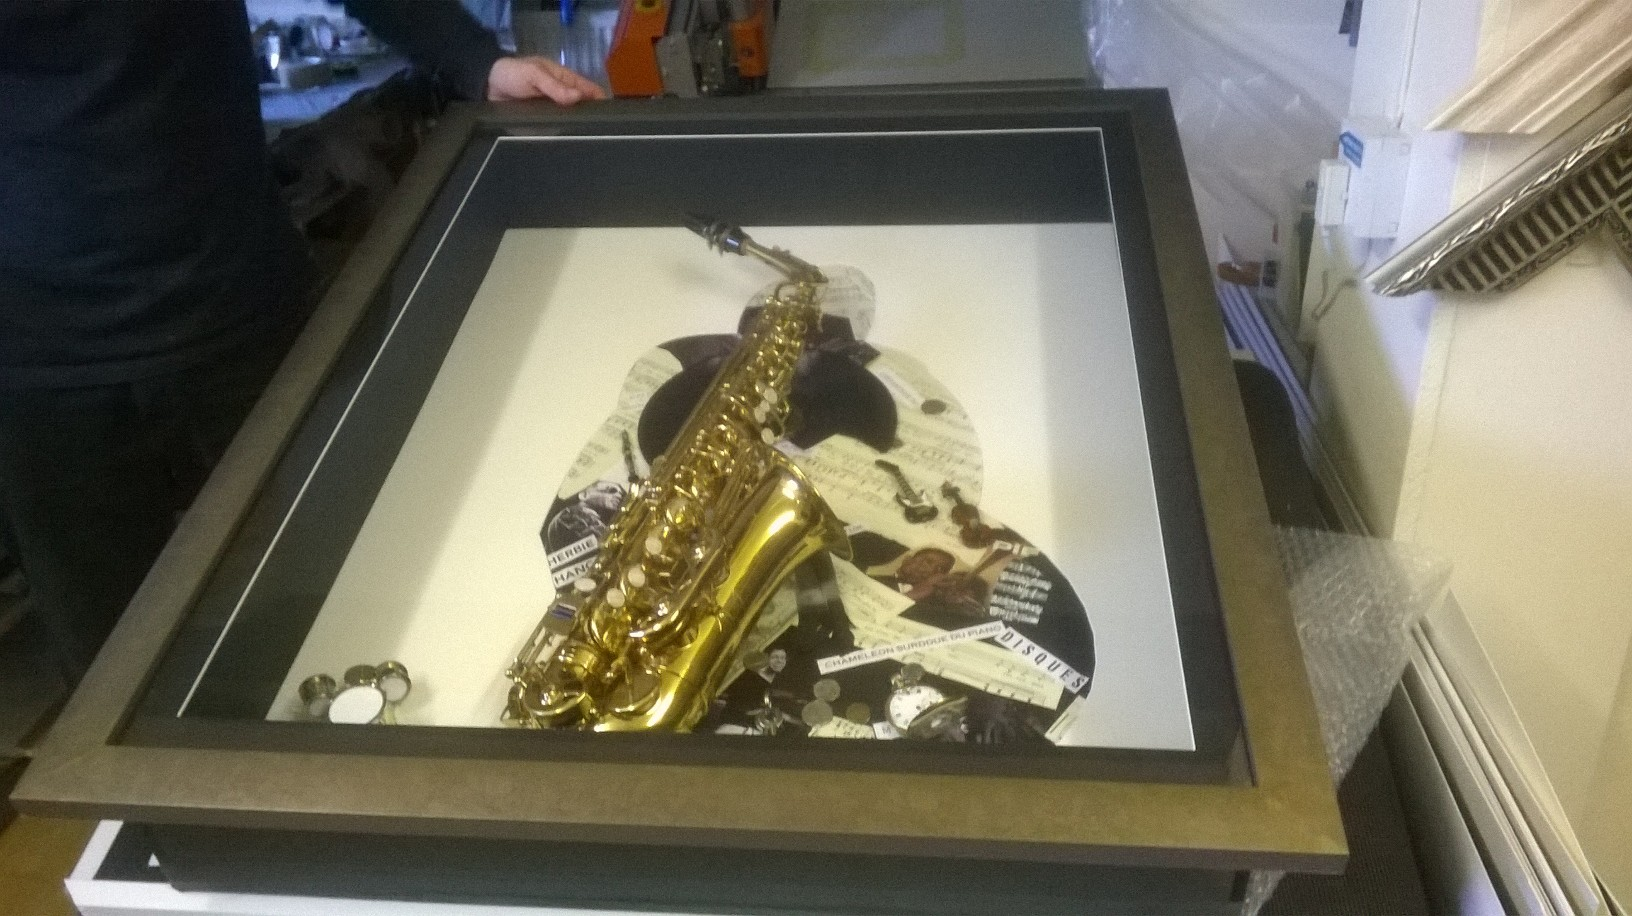 Box frame for saxophone